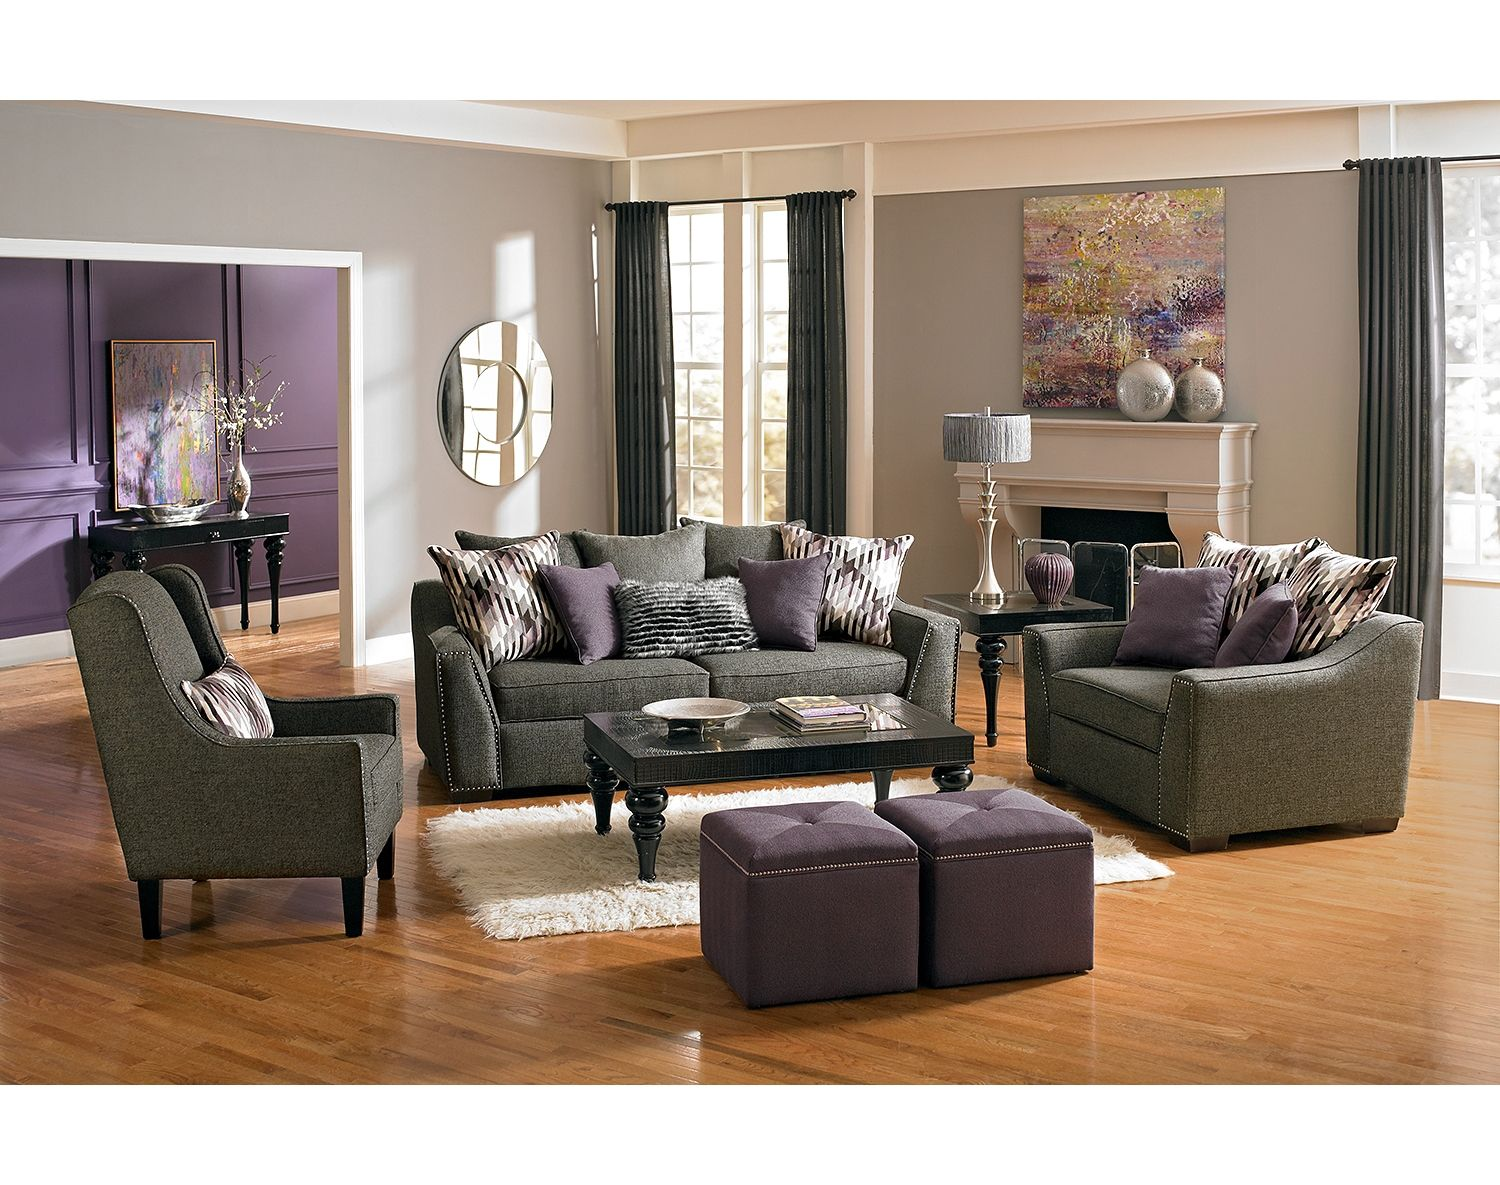 The Ritz Collection Gray American Signature Furniture Purple Living Room Purple Living Room Furniture Living Room Grey